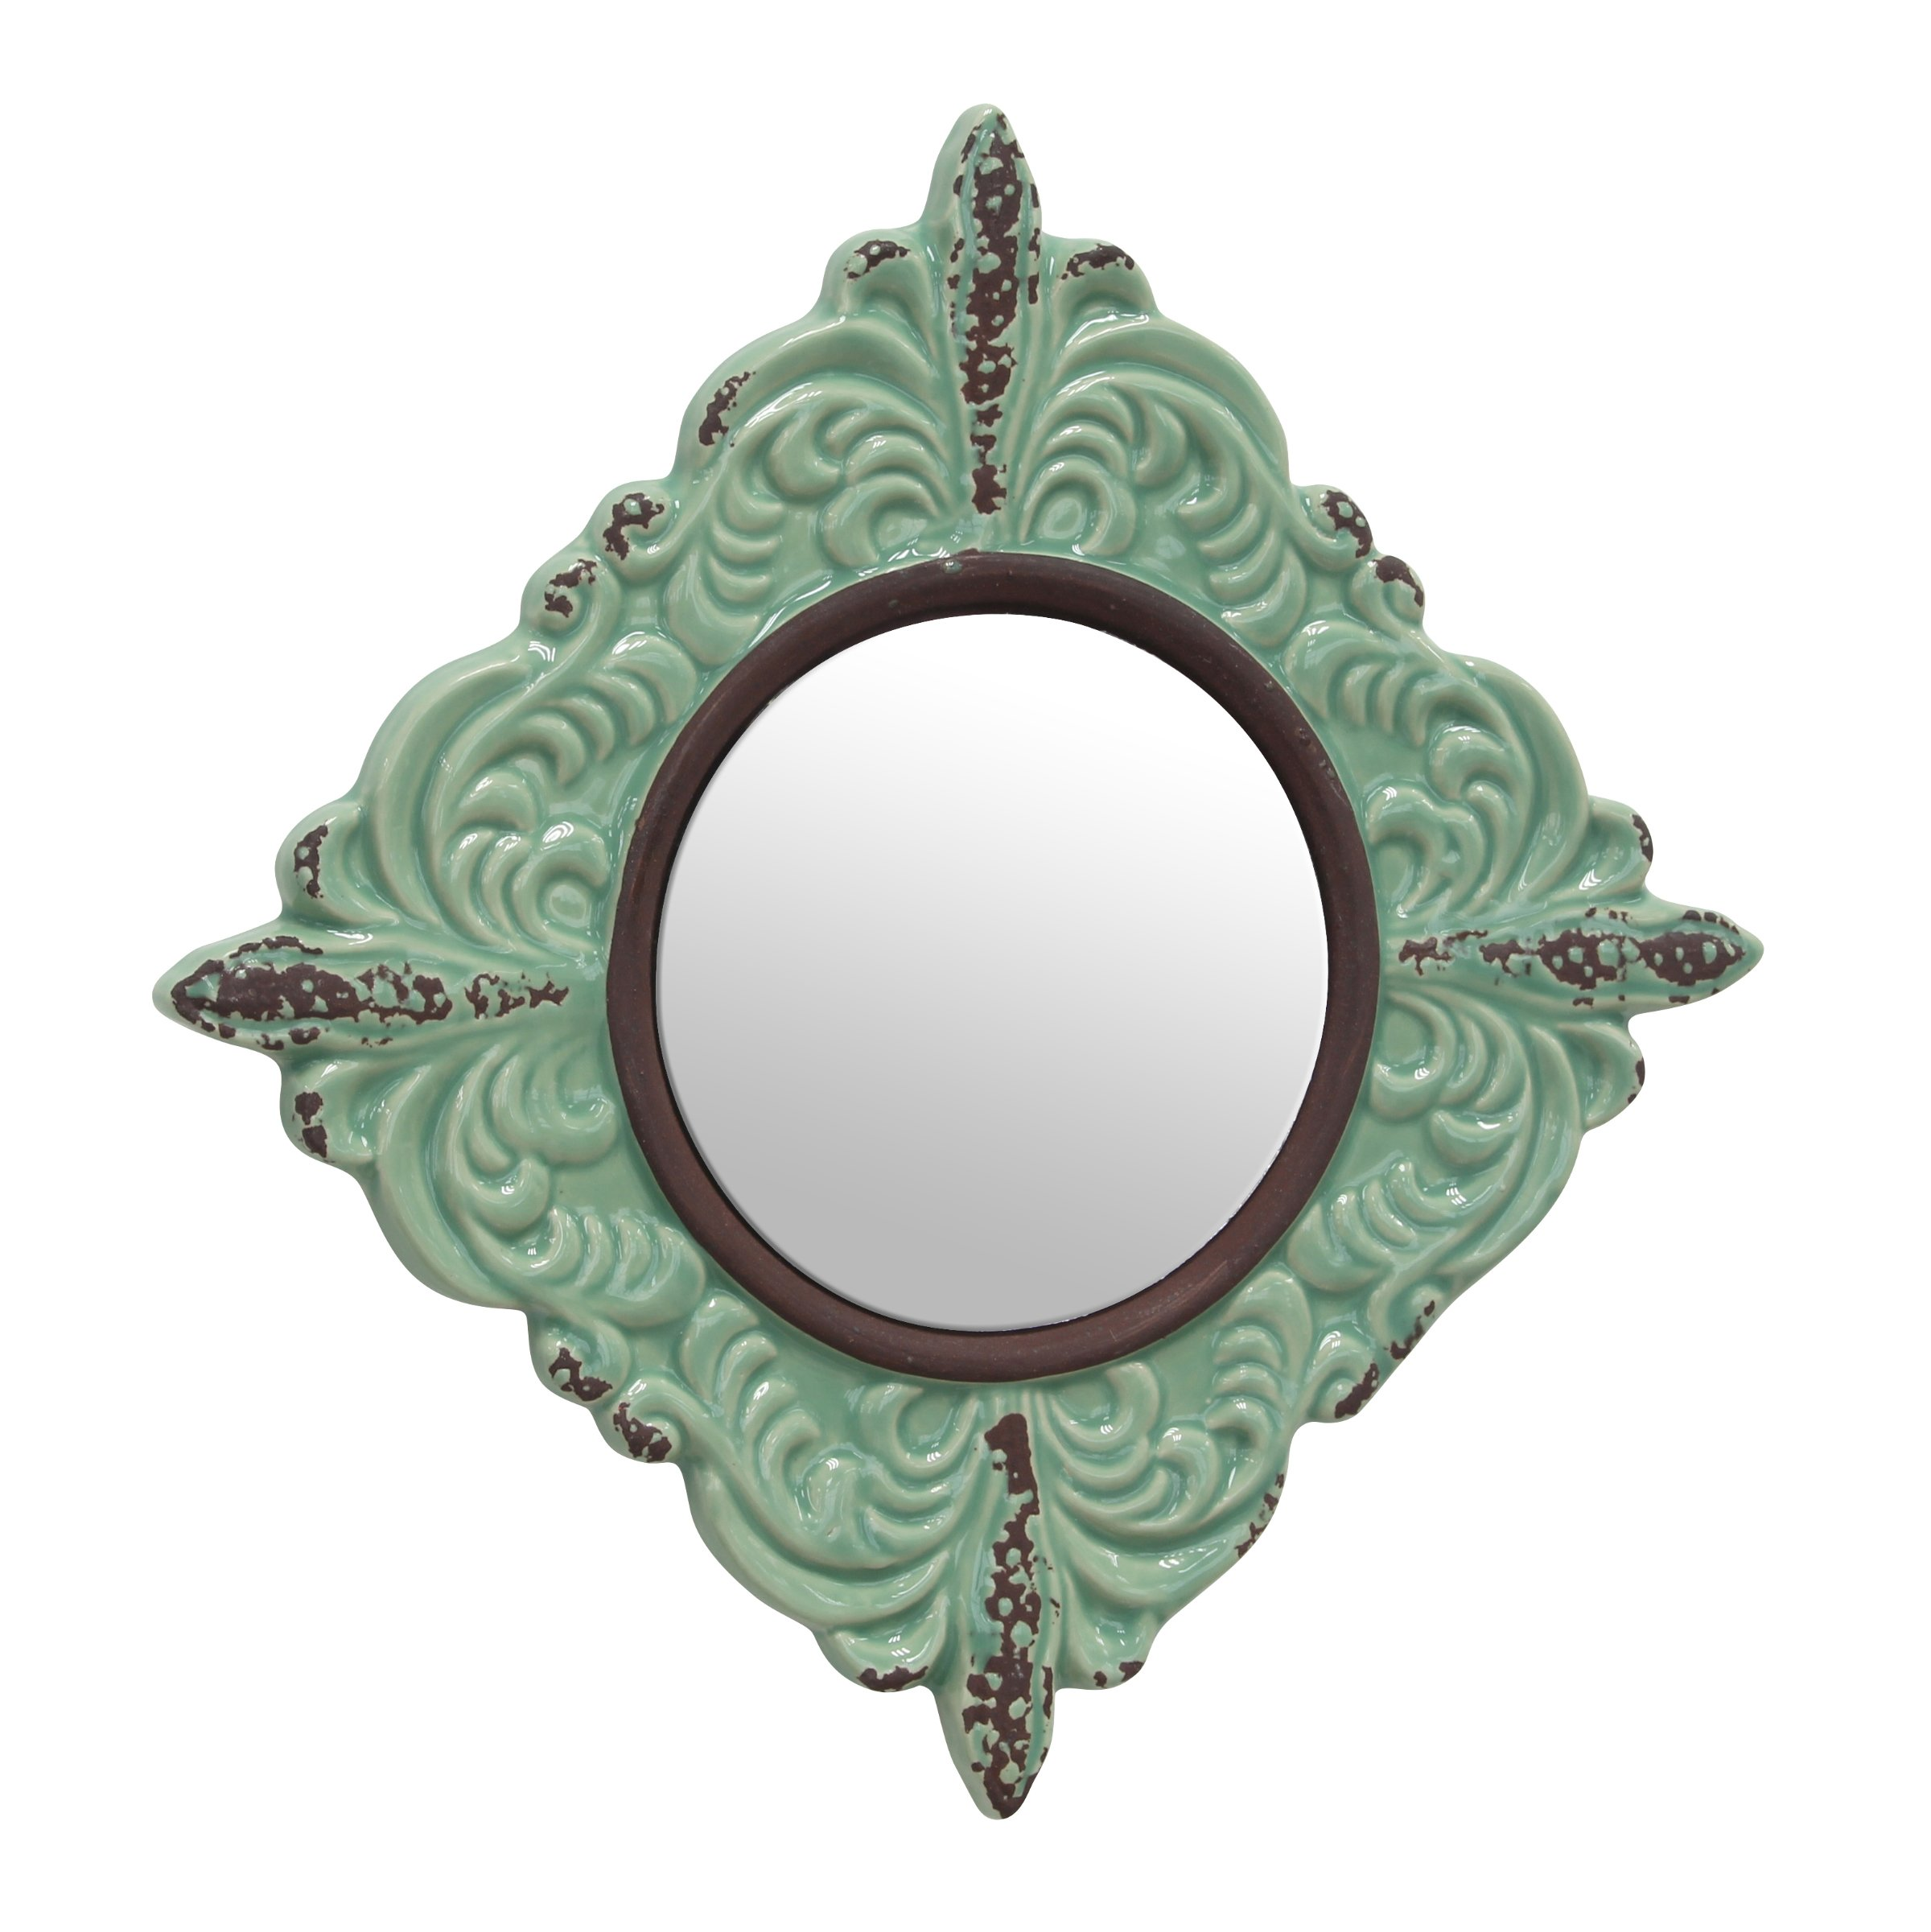 Stonebriar SB-5039A Decorative Antique Green Ceramic Wall Mirror, Vintage Home Décor for Living Room, Kitchen, Bedroom, or Hallway, French Country Decor